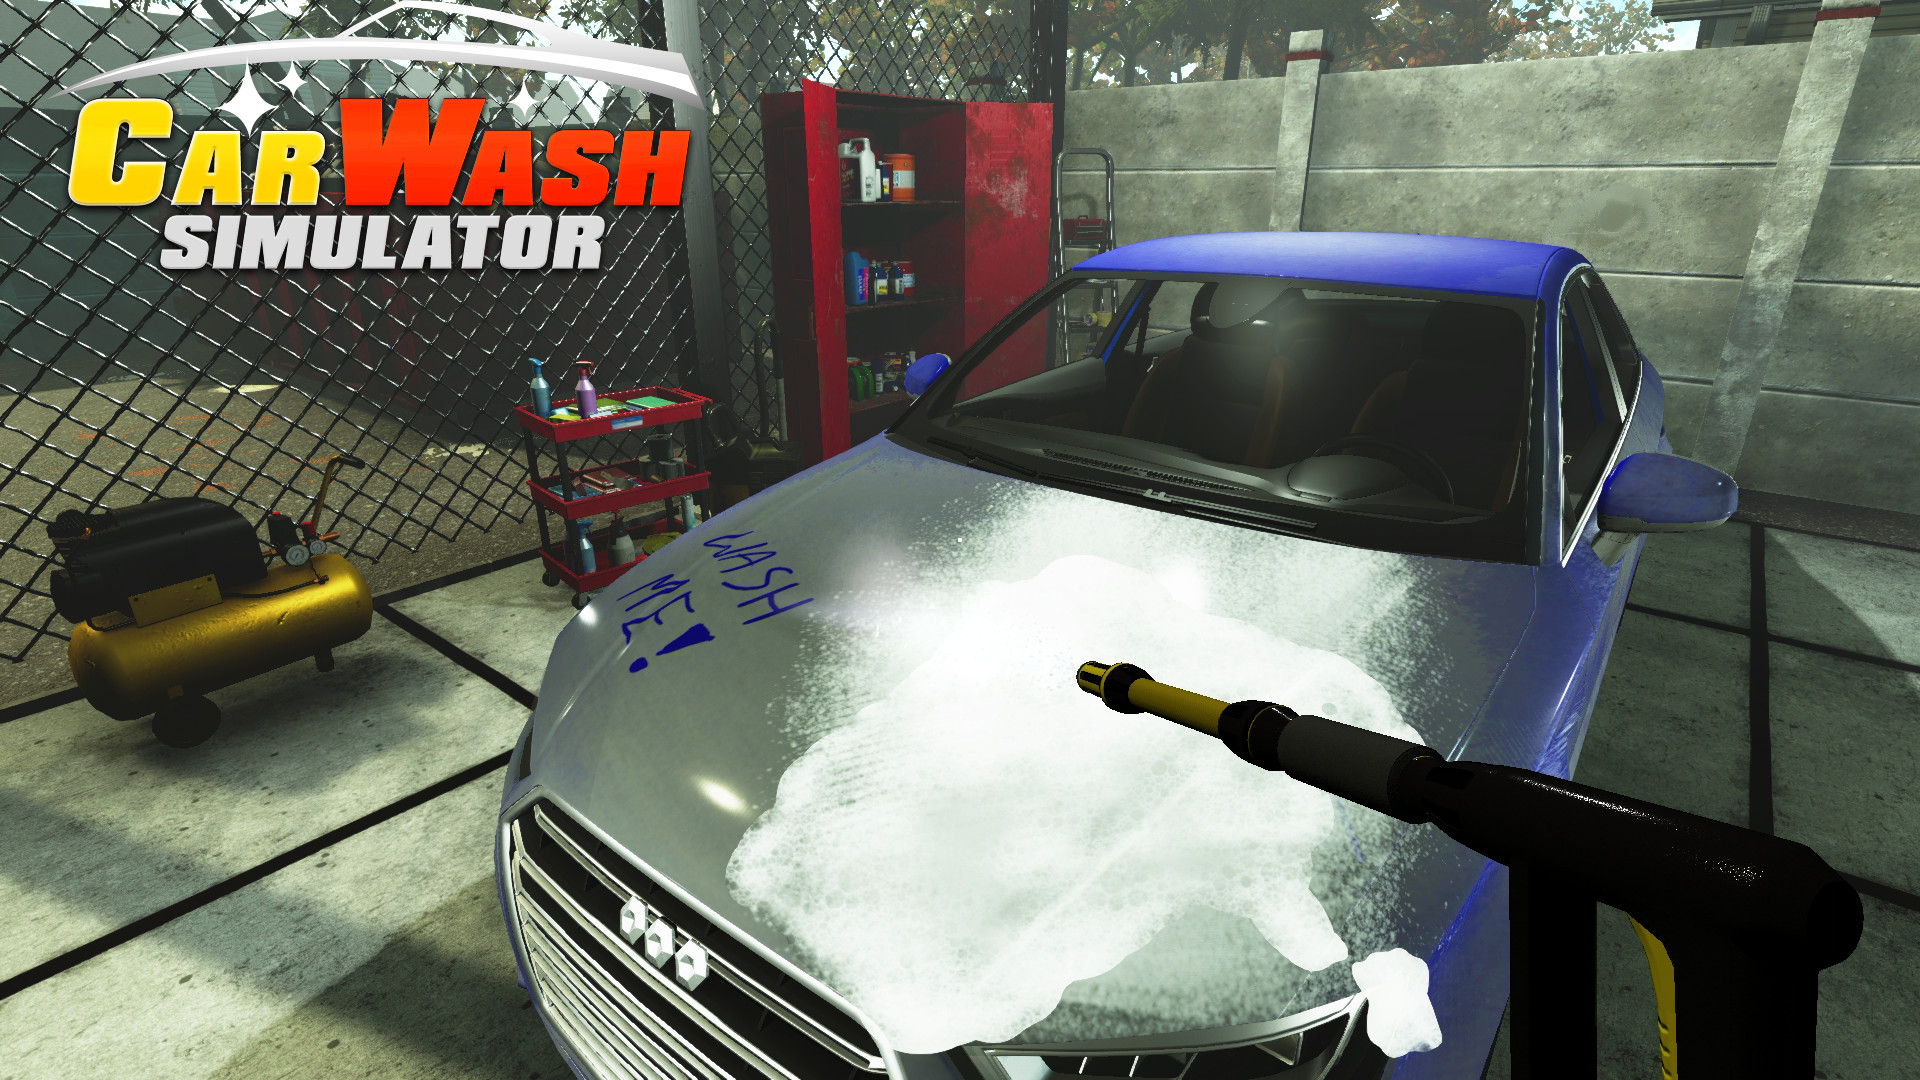 Car Wash Simulator's First Trailer Takes a Horrifying Turn Into